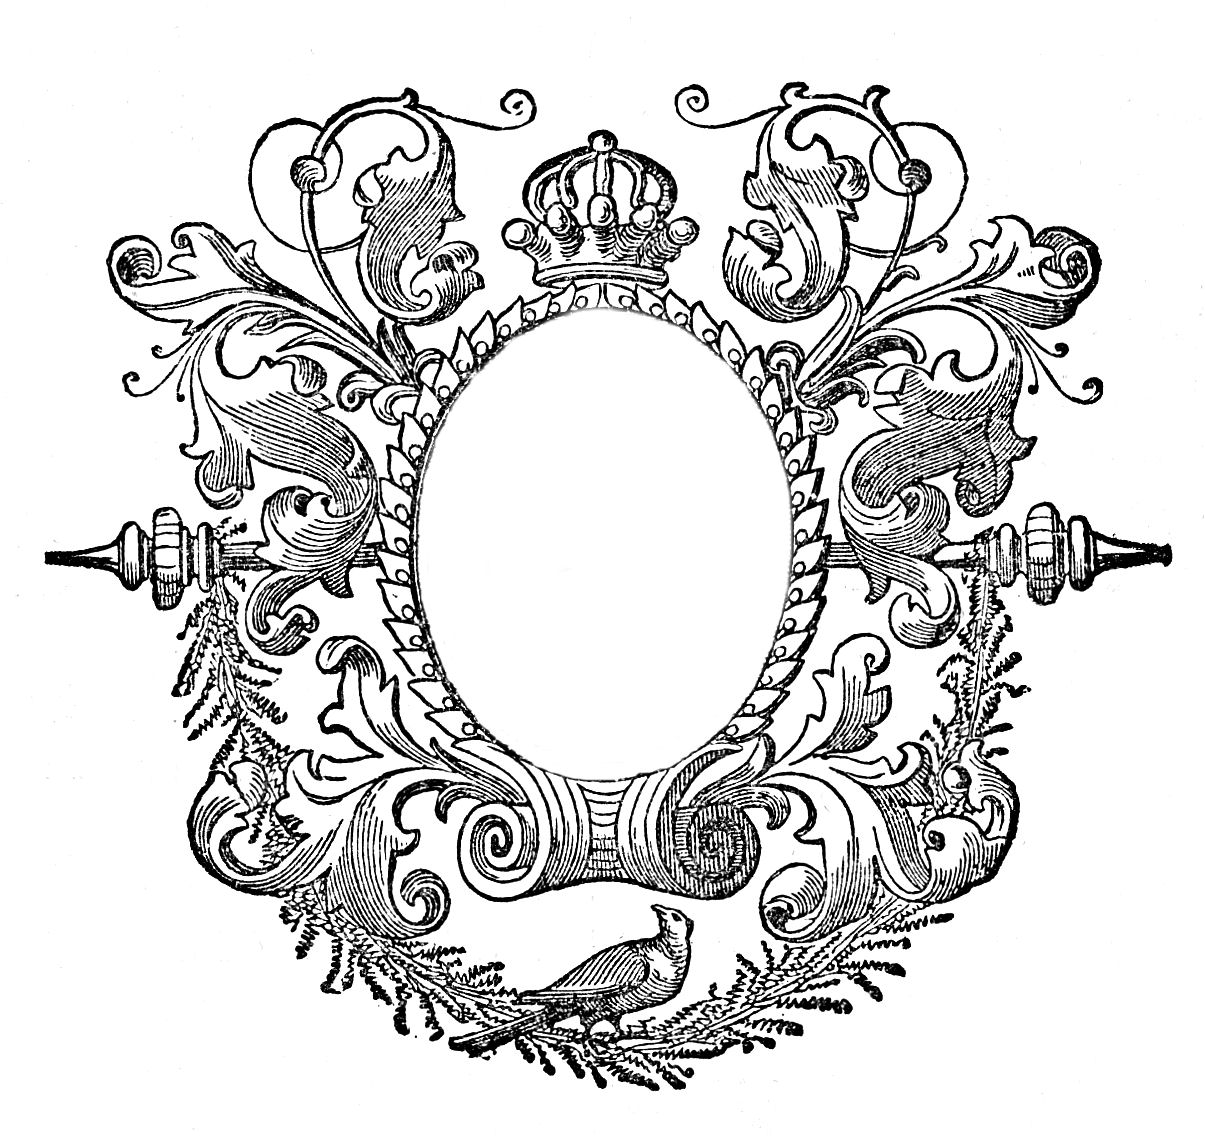 darling engraved cherub in frame image download - Engraved Picture Frame